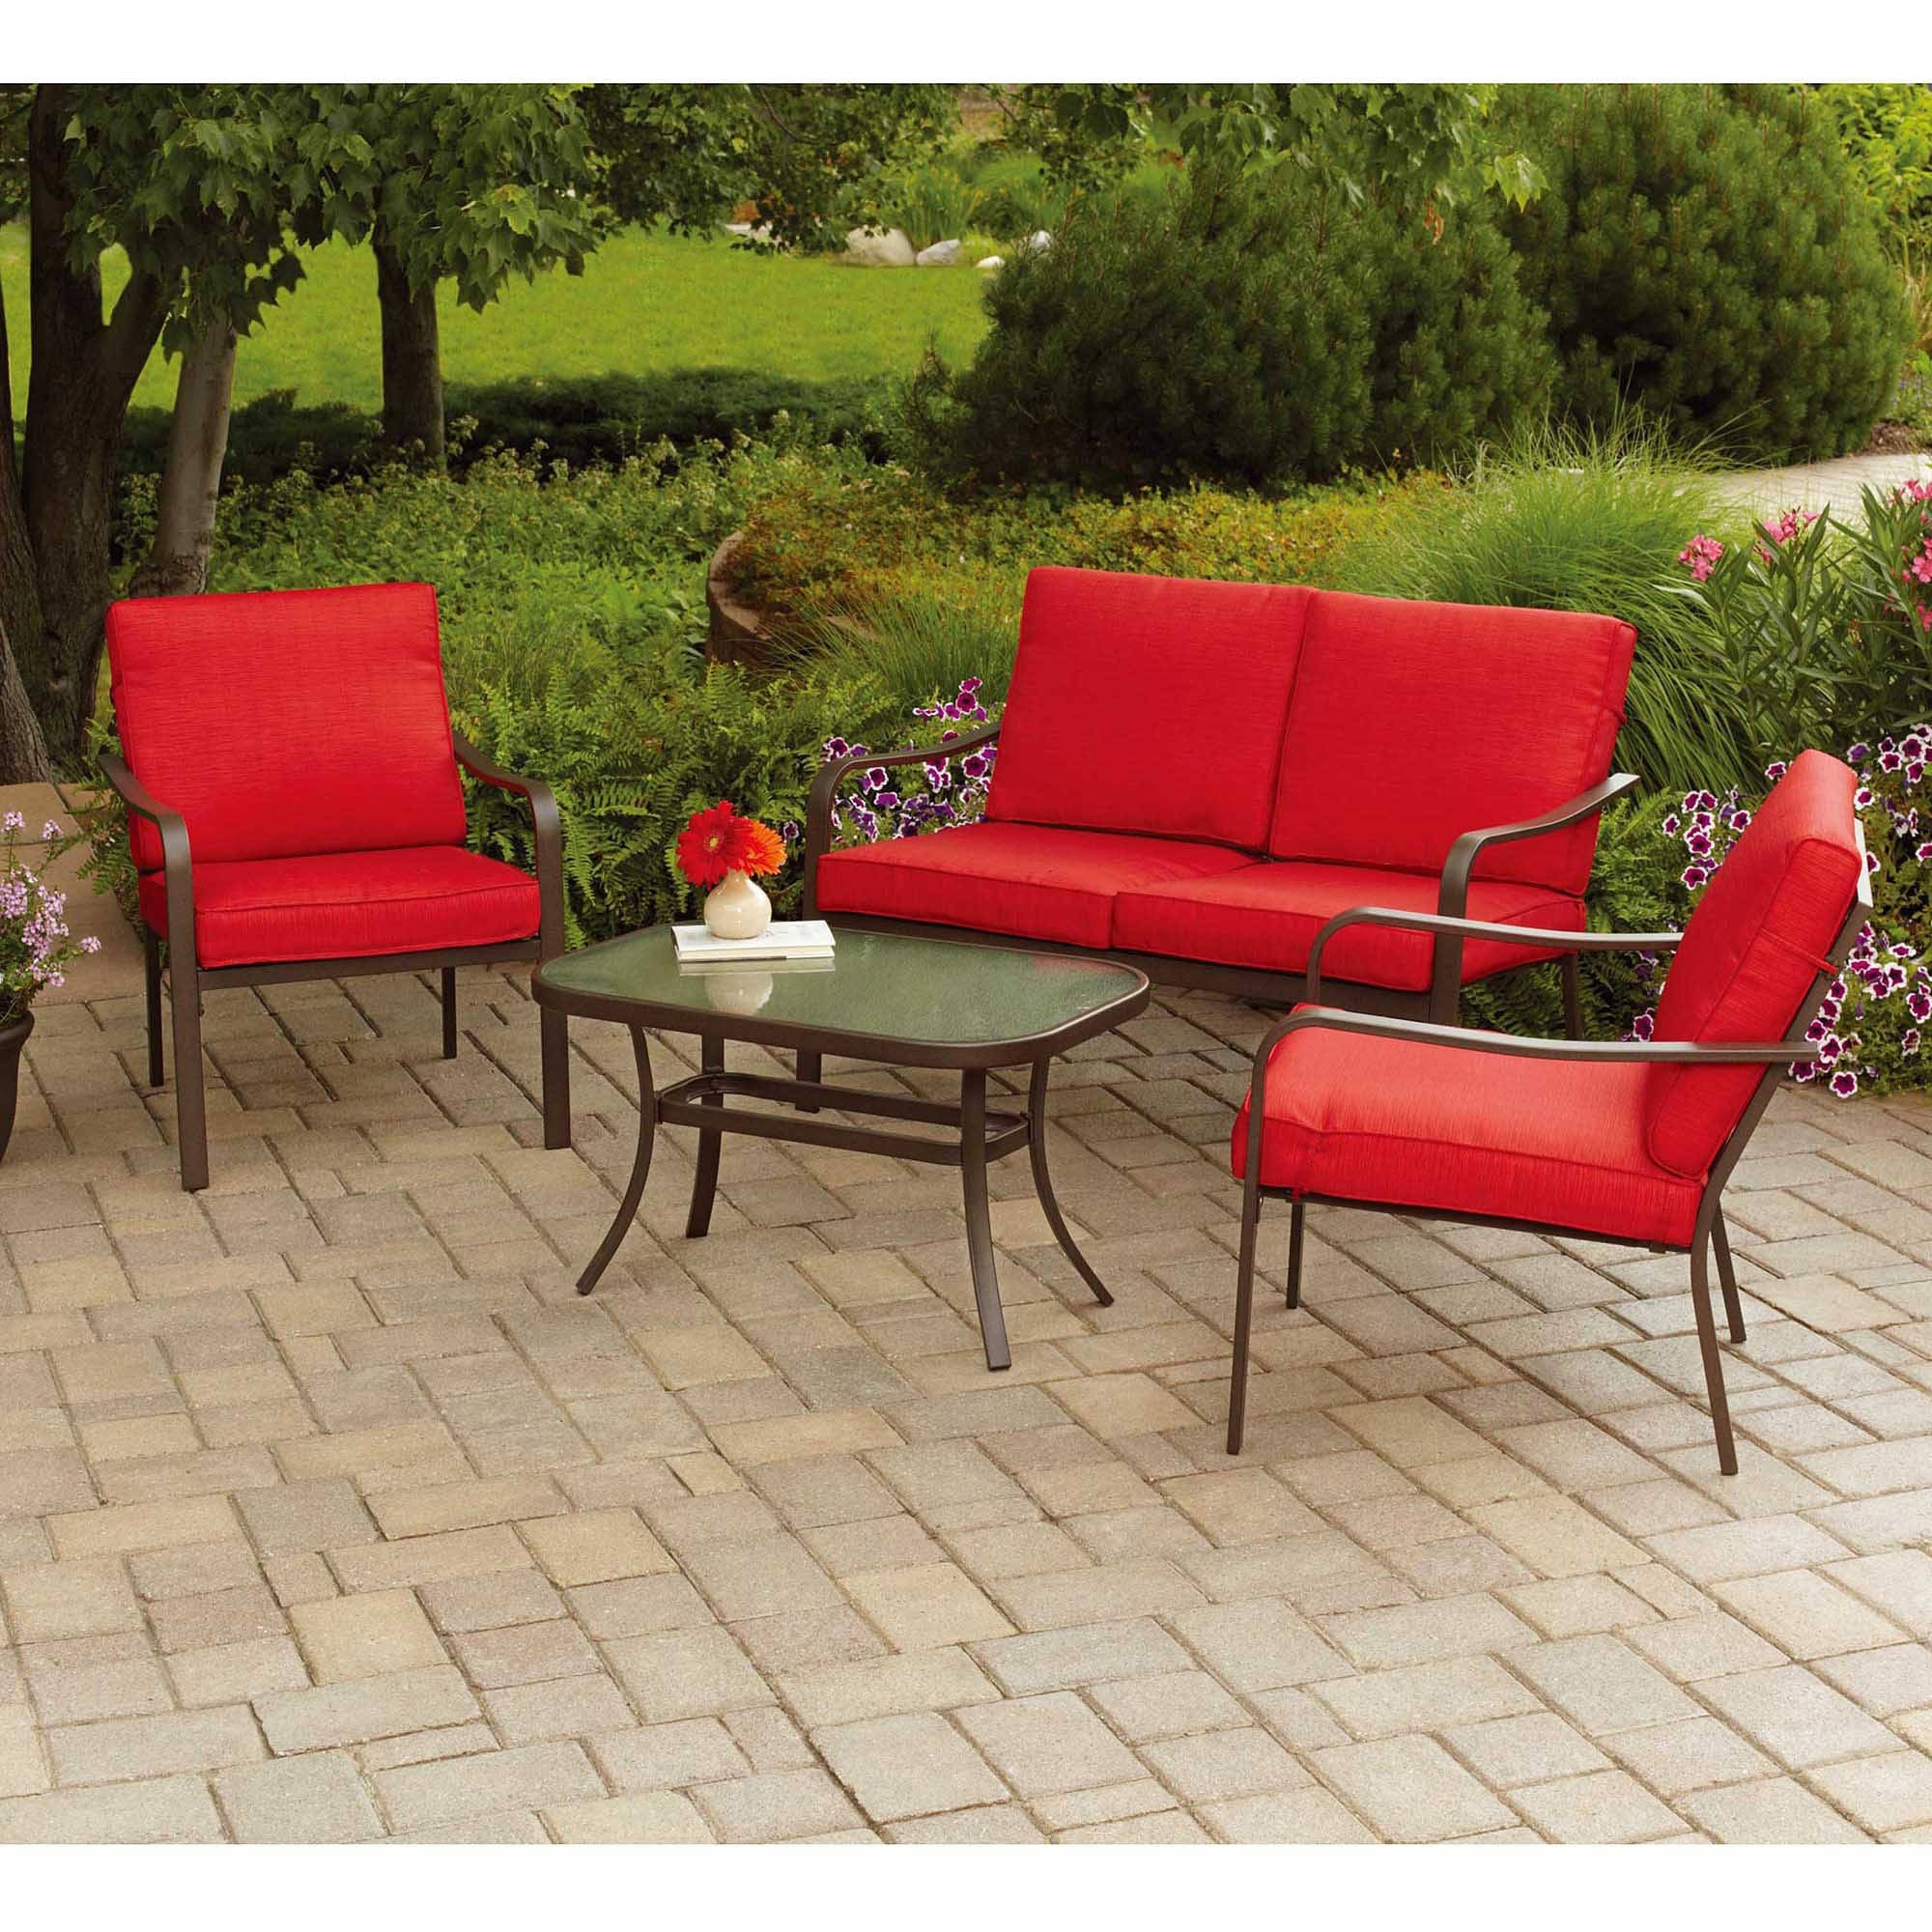 Well Liked Mainstays Stanton Cushioned 4 Piece Patio Conversation Set, Seats 4 Inside Patio Conversation Sets At Sears (View 20 of 20)